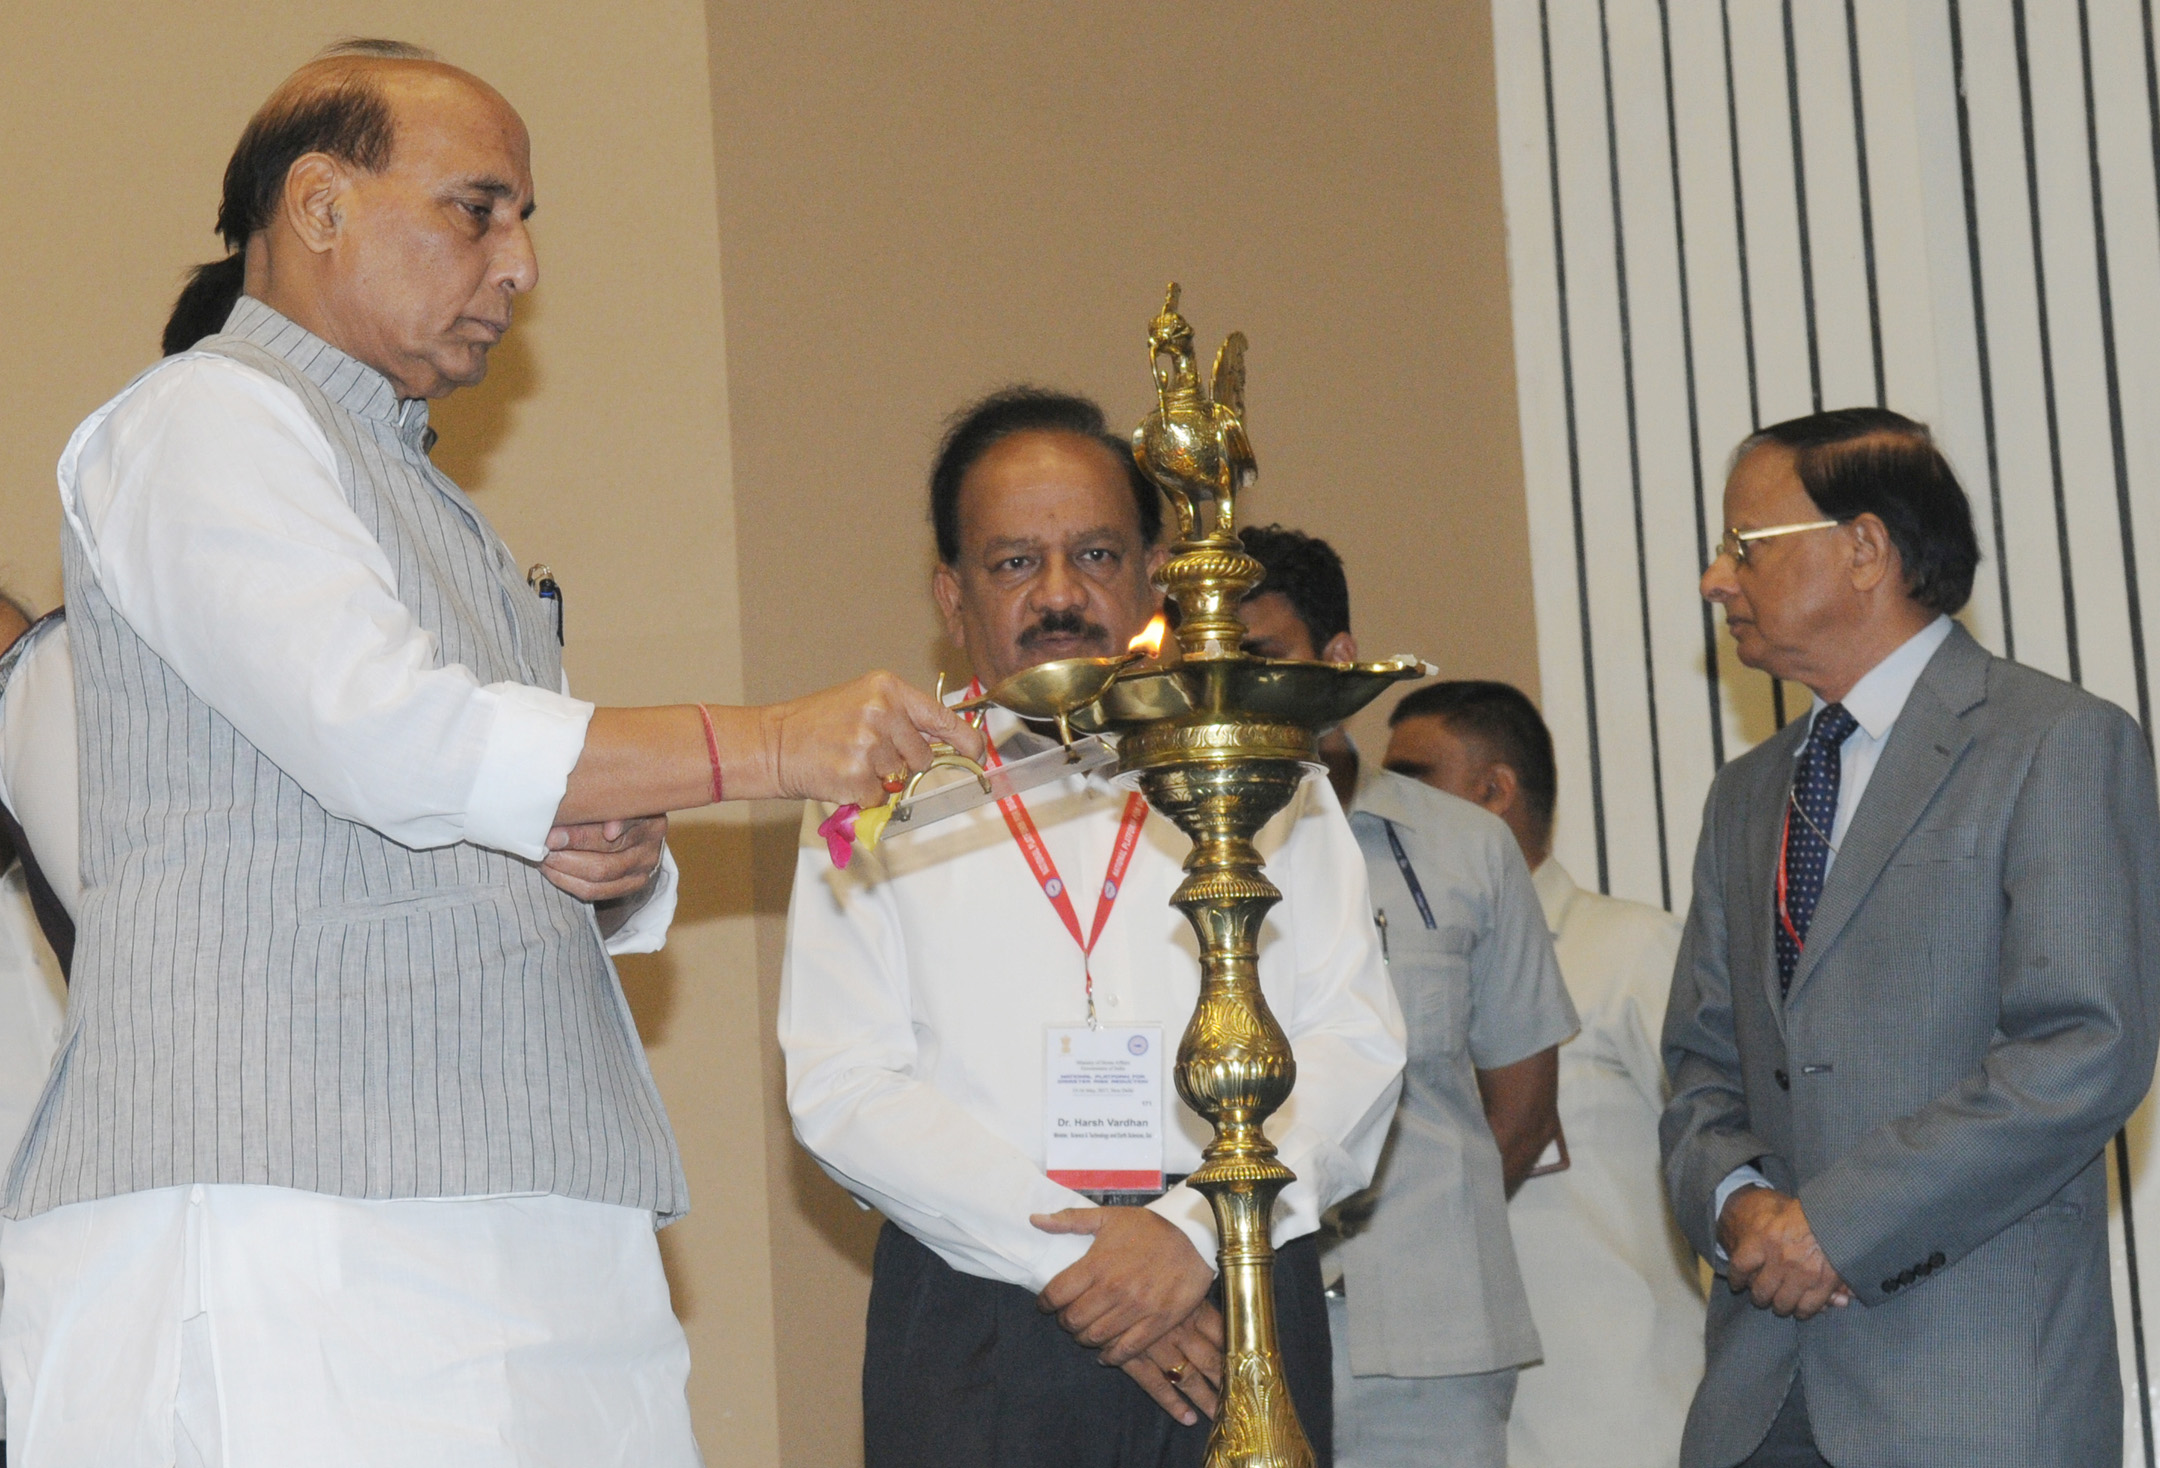 The Union Home Minister, Shri Rajnath Singh lighting the lamp to inaugurate the second meeting of the National Platform for Disaster Risk Reduction (NPDRR), in New Delhi on May 15, 2017. 	The Union Minister for Science & Technology and Earth Sciences, Dr. Harsh Vardhan and the Additional Principal Secretary to the Prime Minister, Dr. P.K. Mishra are also seen.